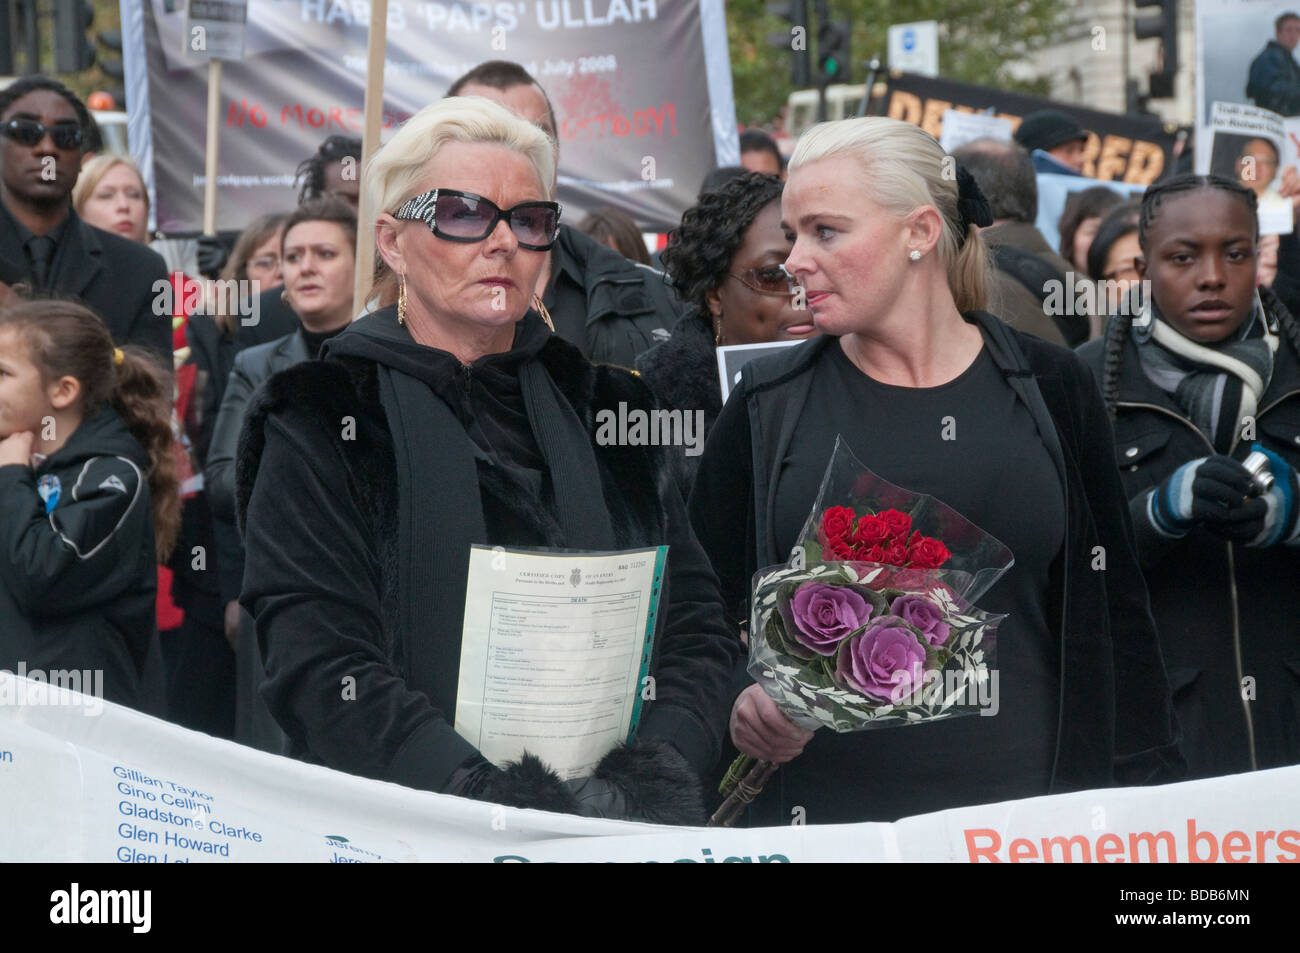 United Friends and Families Protest Custody Deaths. Mother and wife of Patrick Cawley with his death certificate - Stock Image